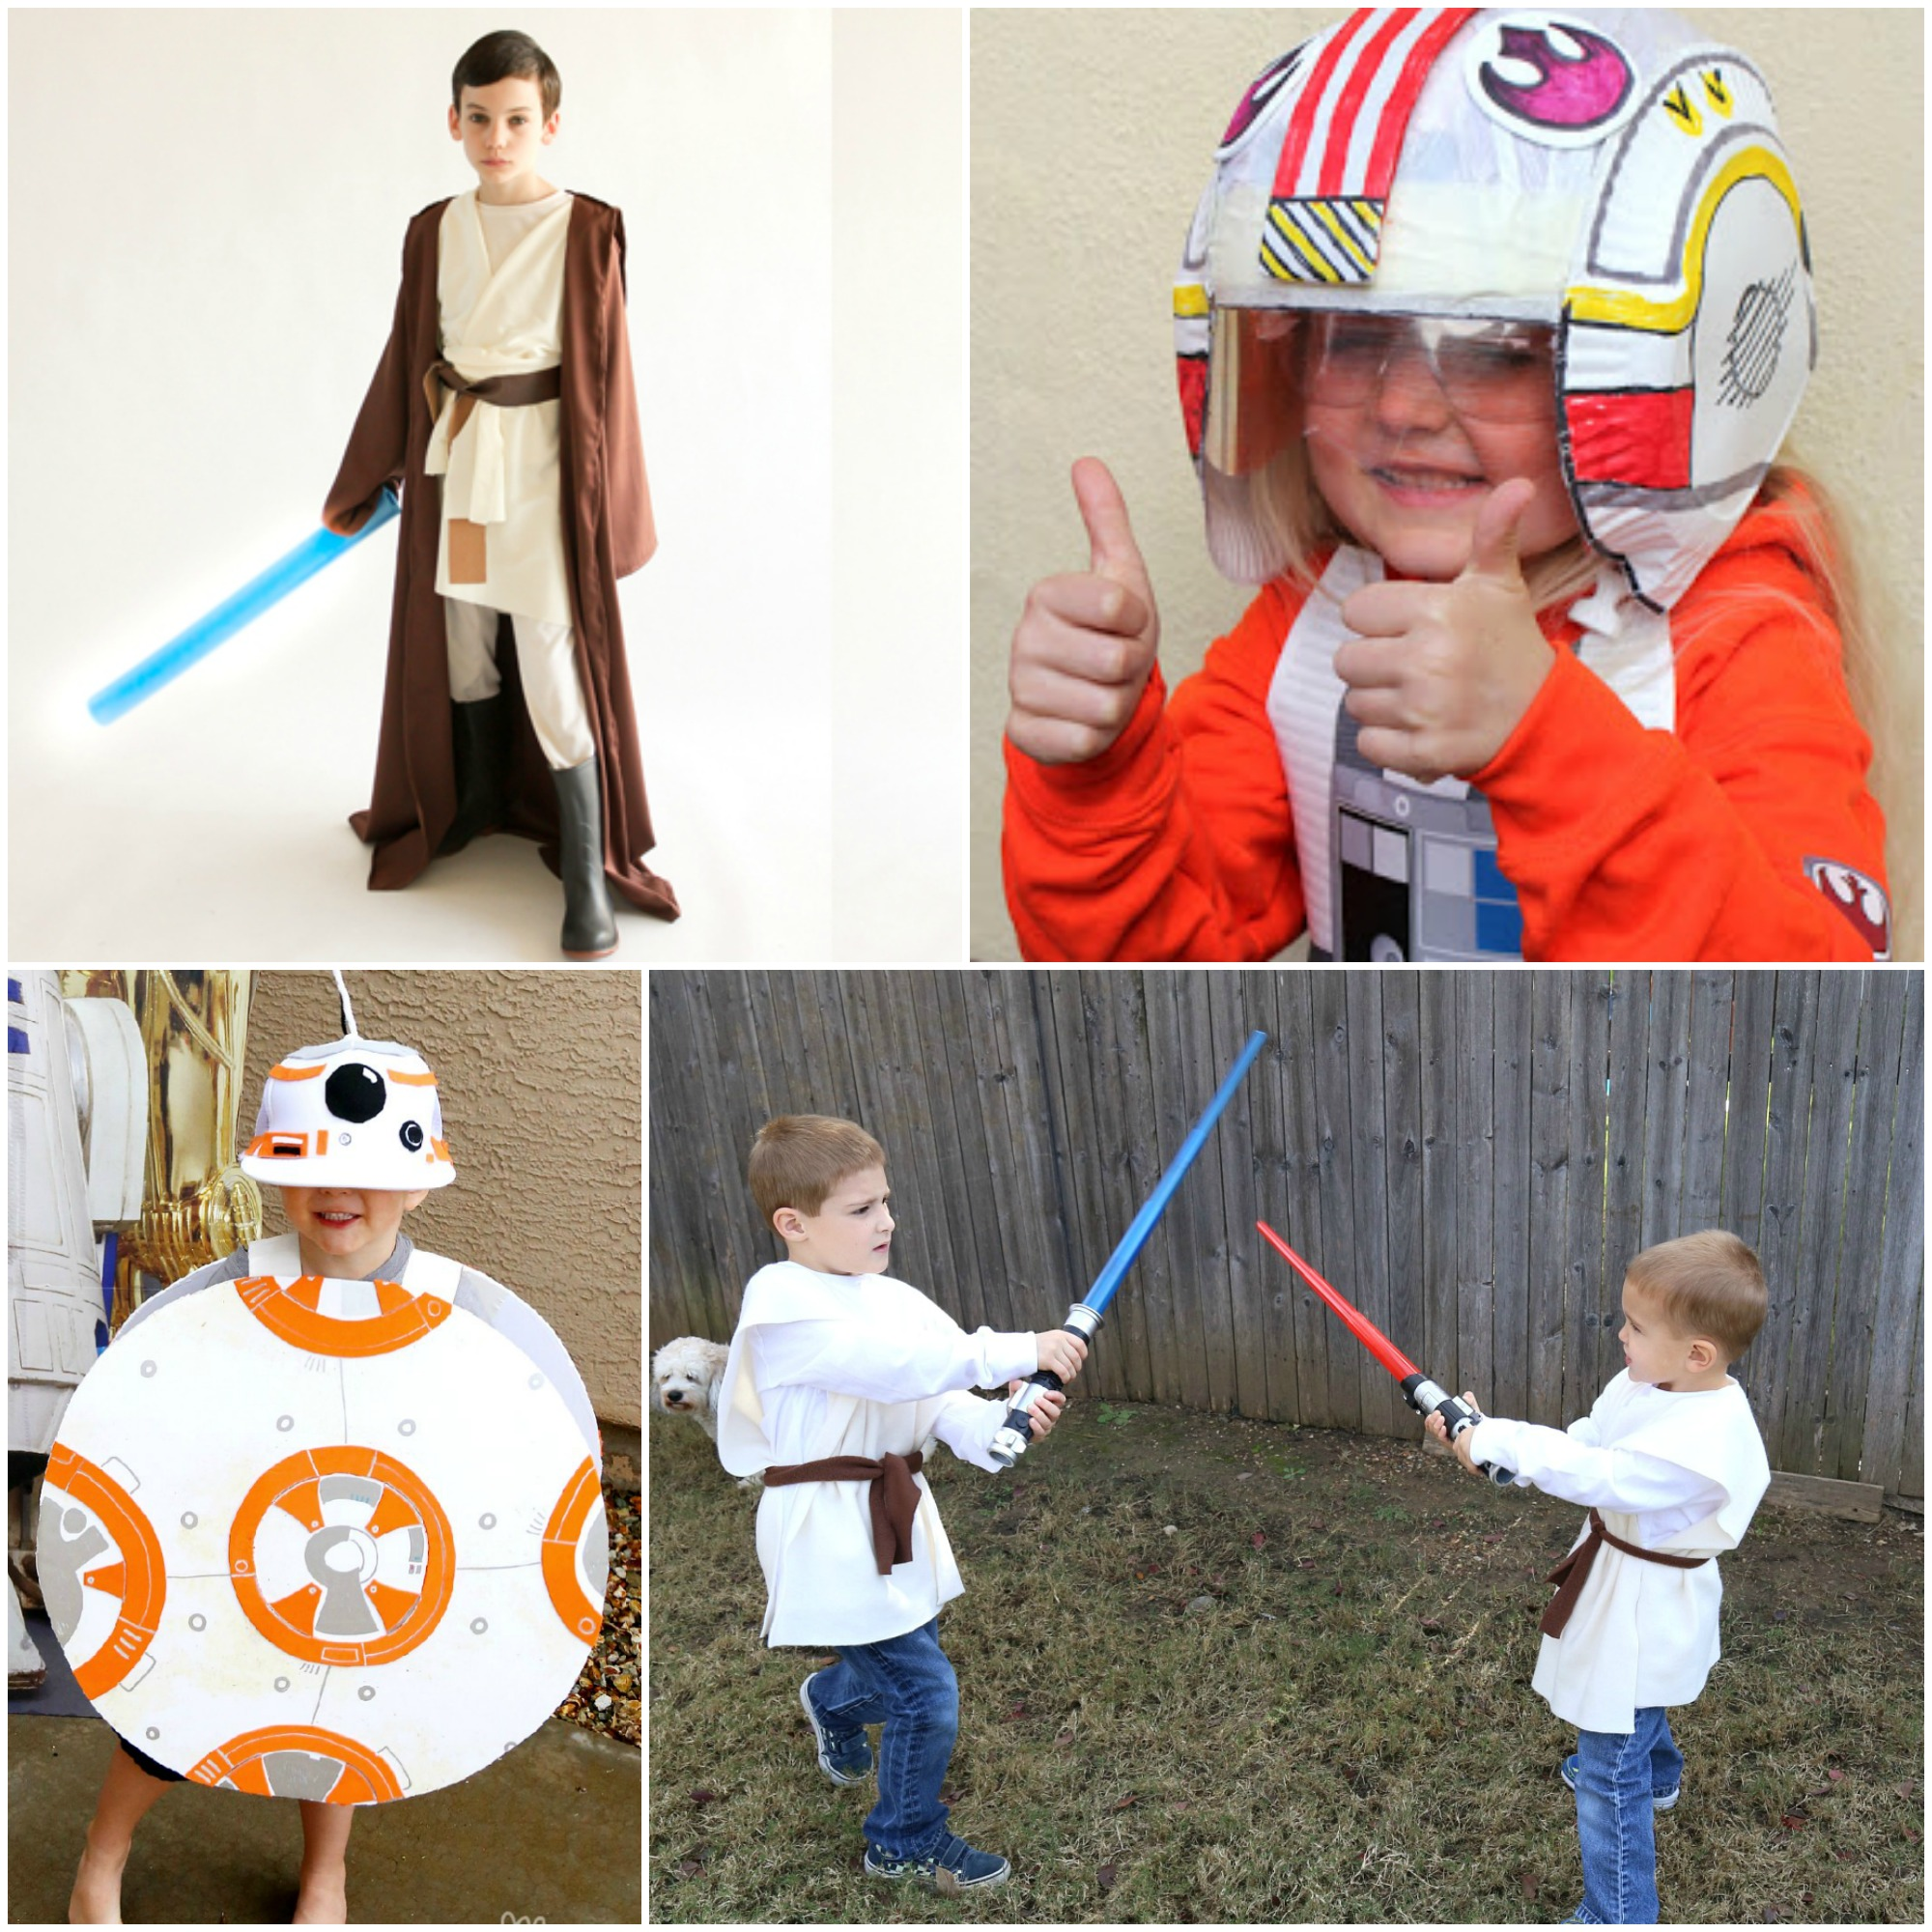 The best star wars costumes to make for kids the best star wars costumes to make for dress up play solutioingenieria Gallery